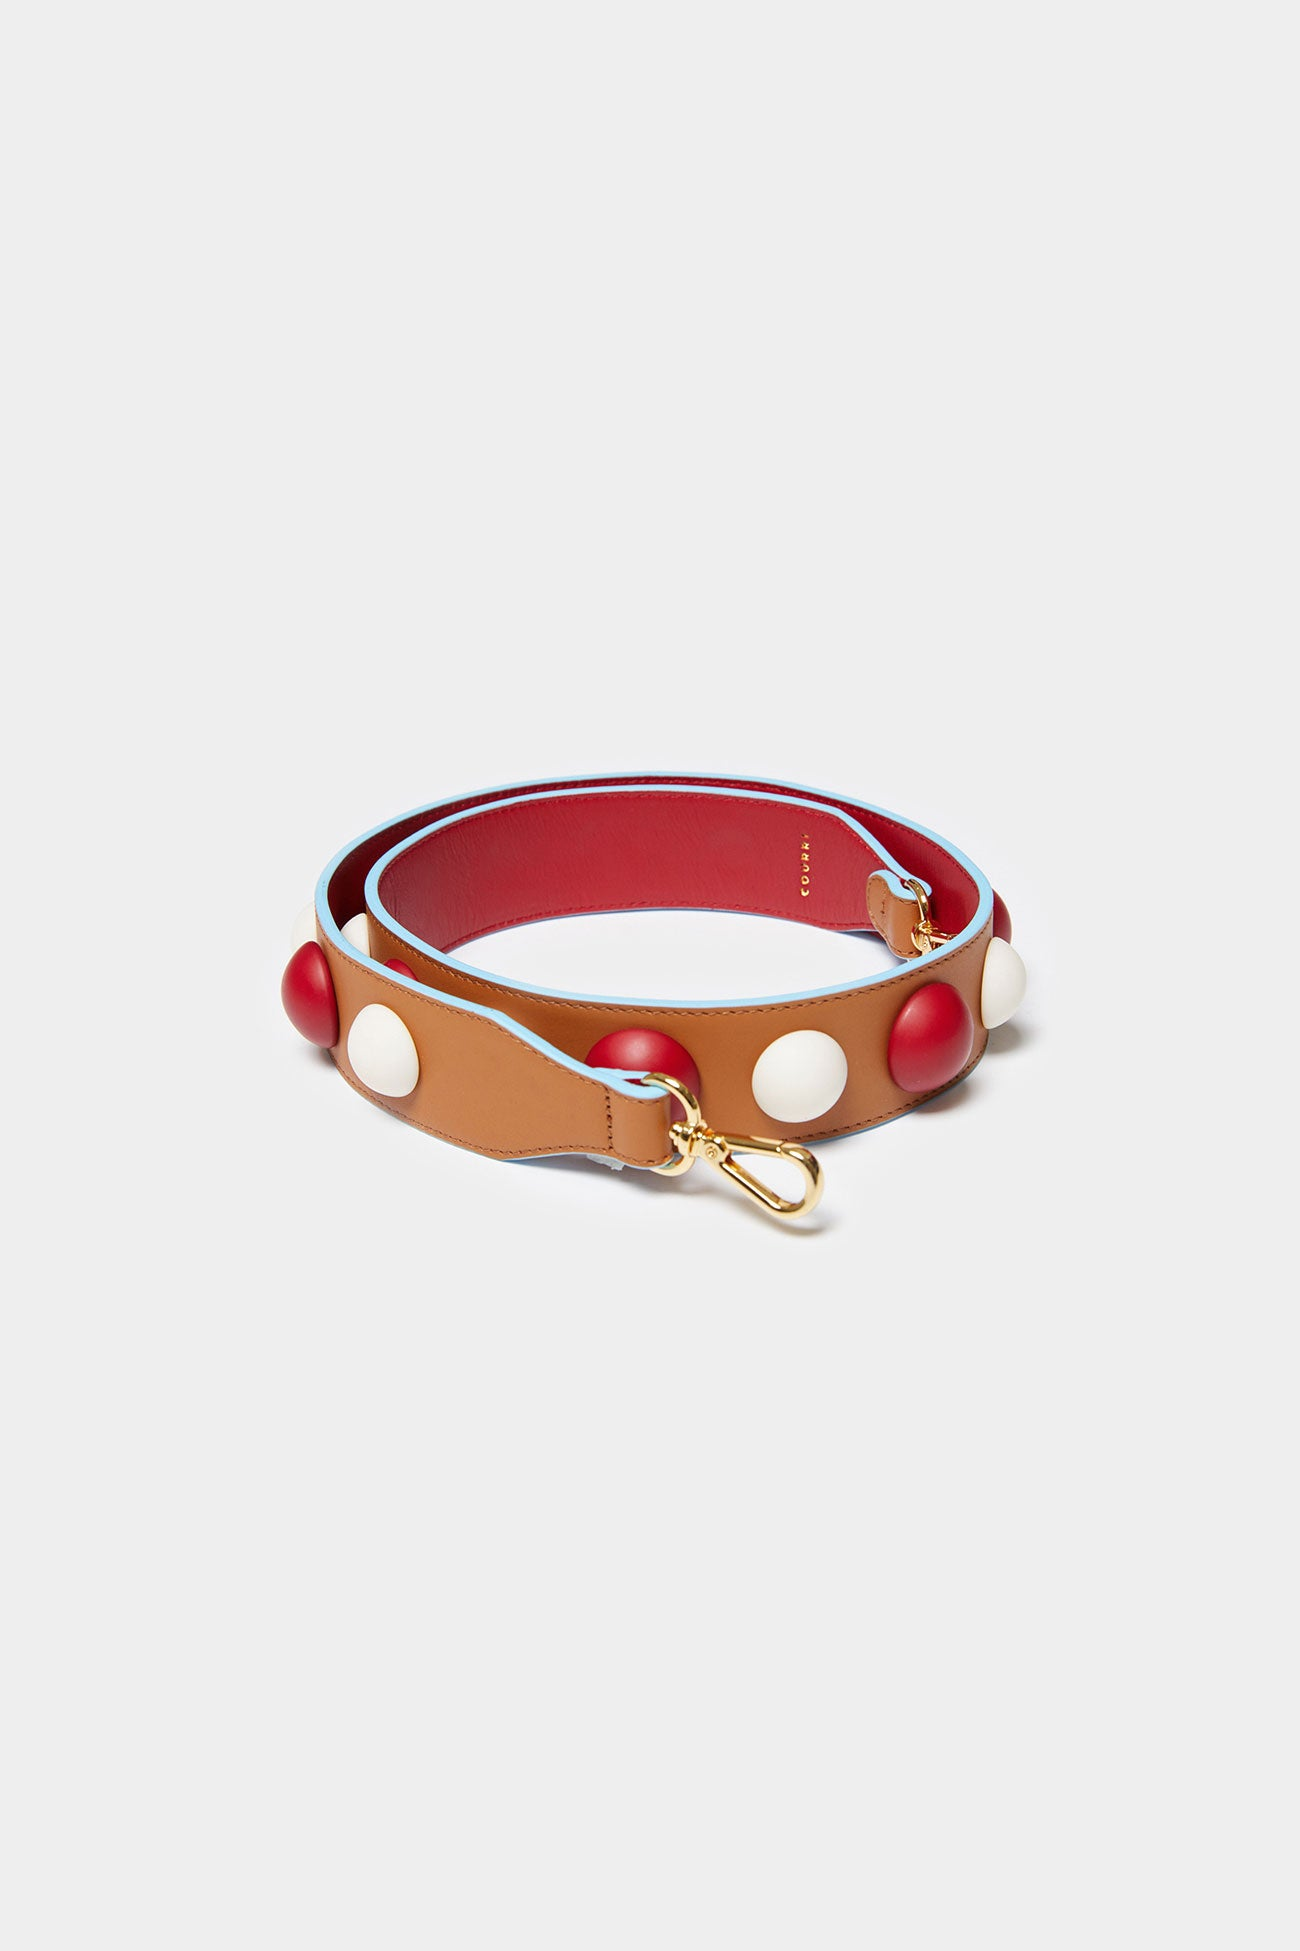 RED MULTI CODIE EMBELLISHED LEATHER STRAP [Long]